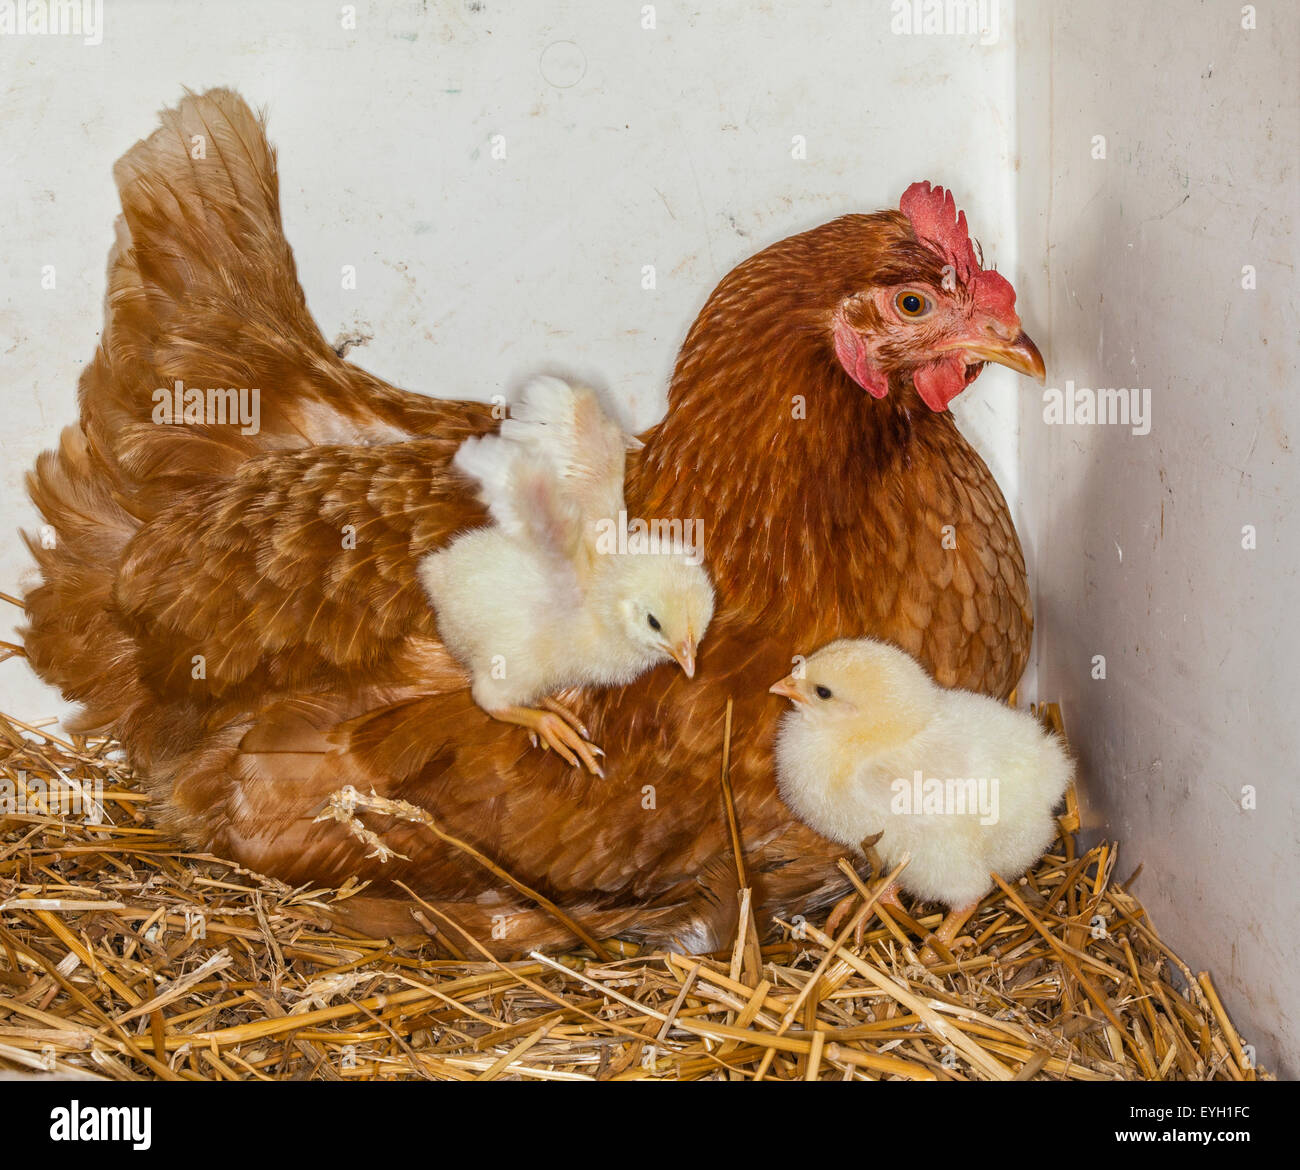 Joy of motherhood, mother hen with chicks - Stock Image